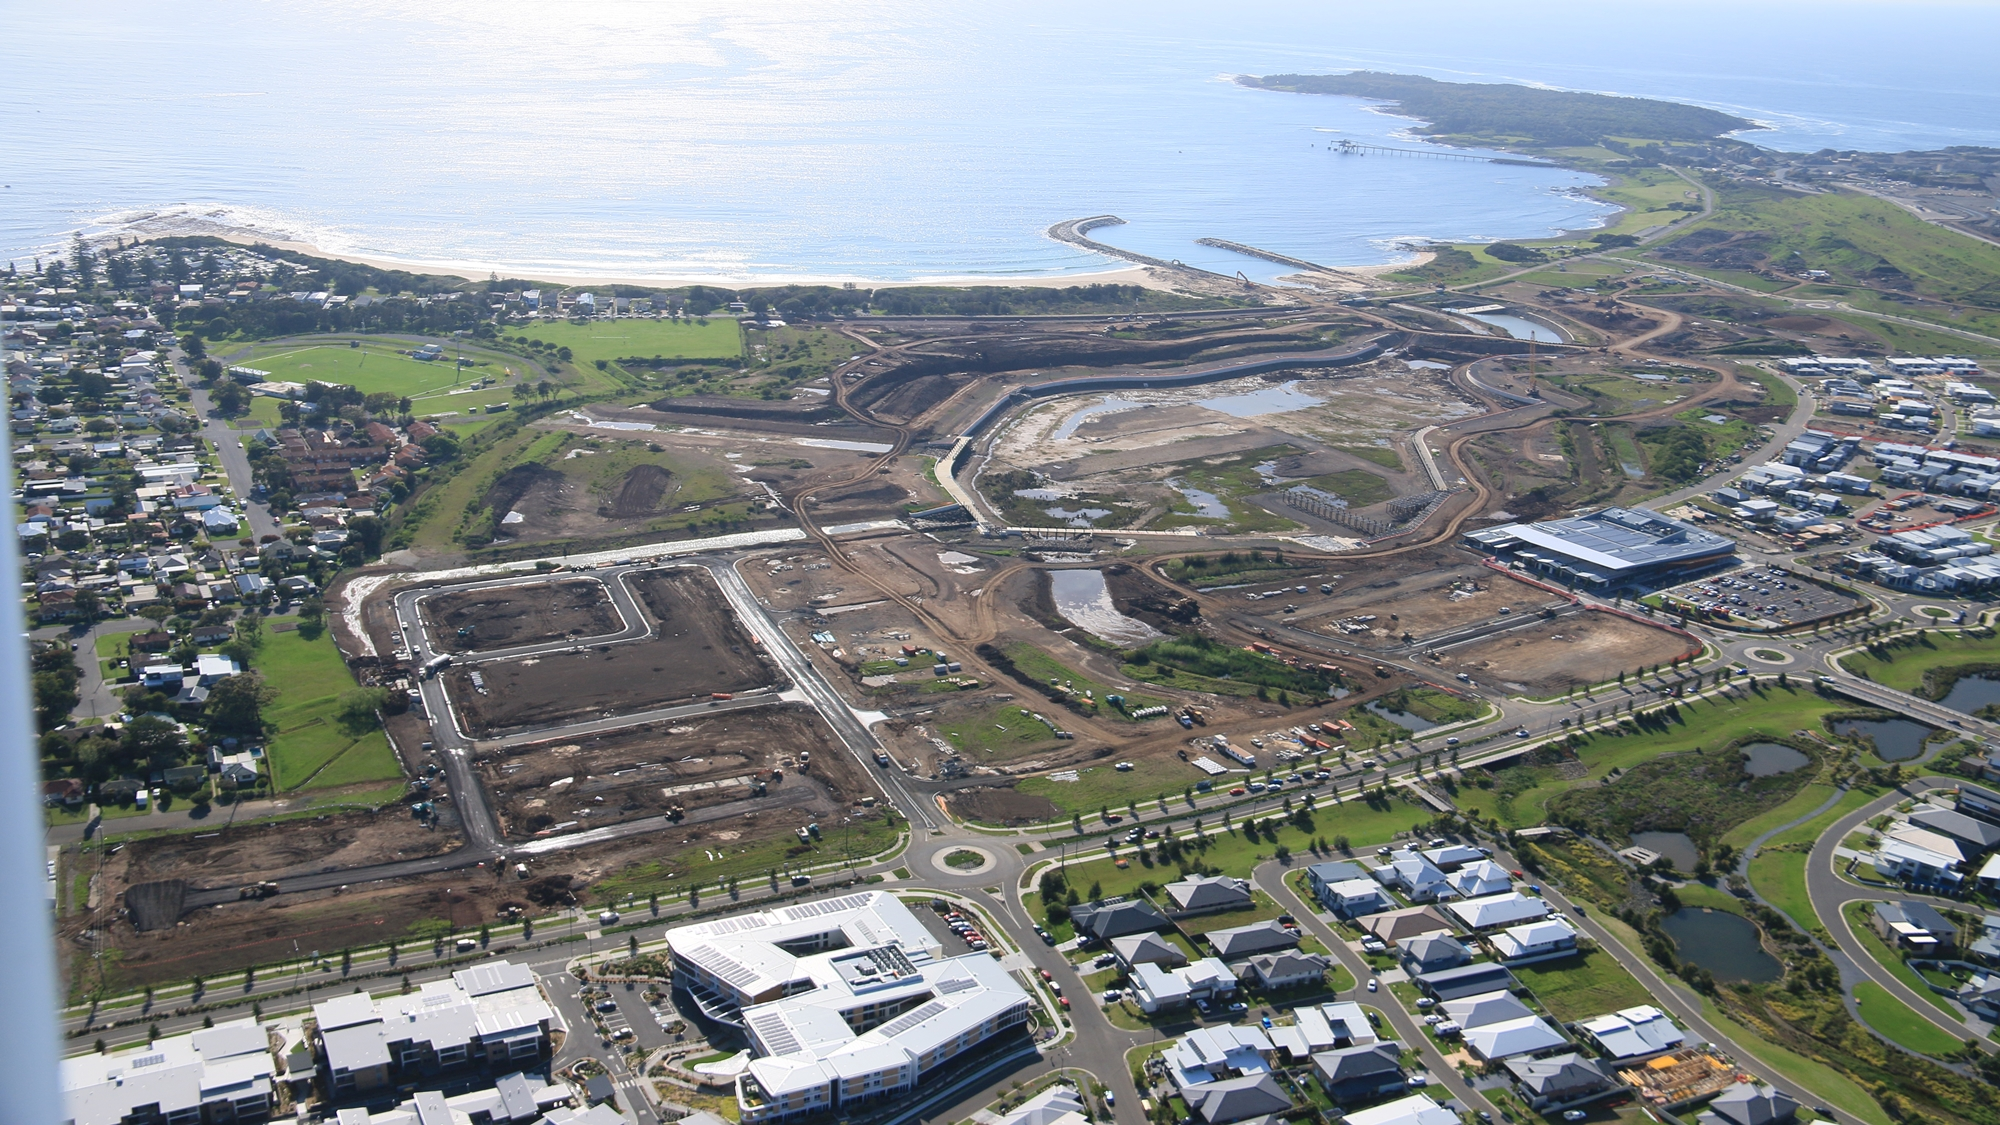 The Waterfront Shell Cove construction images